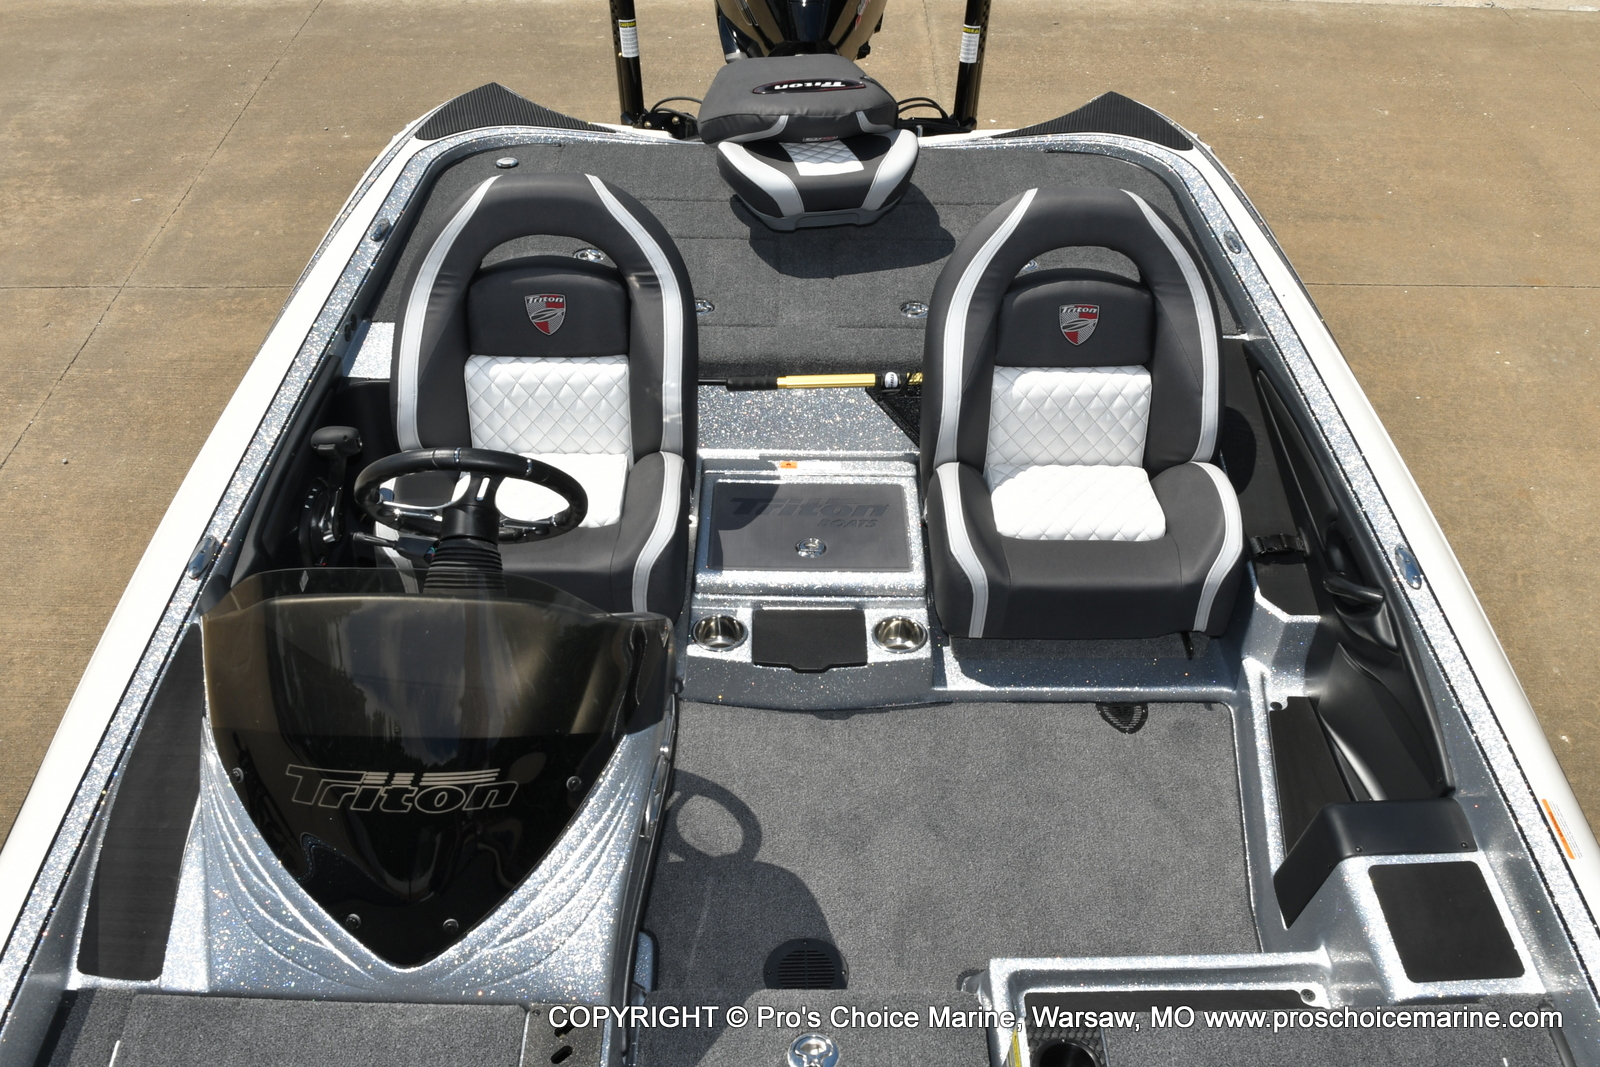 2021 Triton boat for sale, model of the boat is 21 TRX Patriot & Image # 22 of 50